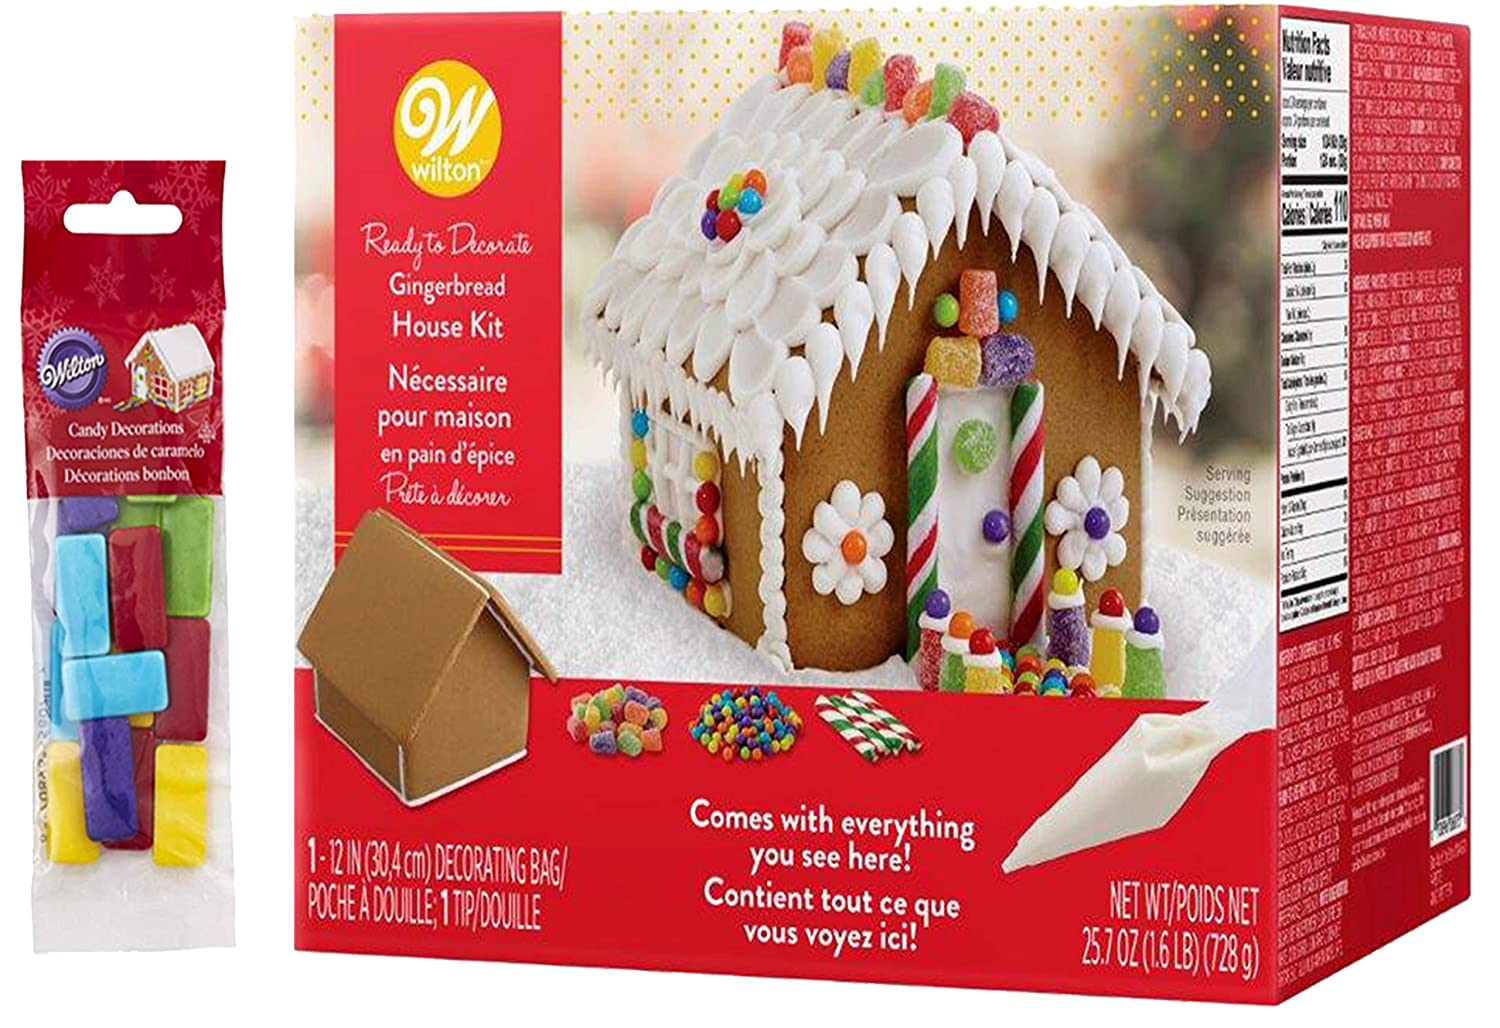 Pre-Assembled Gingerbread House Kit Ready To Decorate, Christmas Fun decorating Kit, Includes: House, Icing, Fondant, Candies, Decorating Bag & Tip - Bundled With Extra Candy!